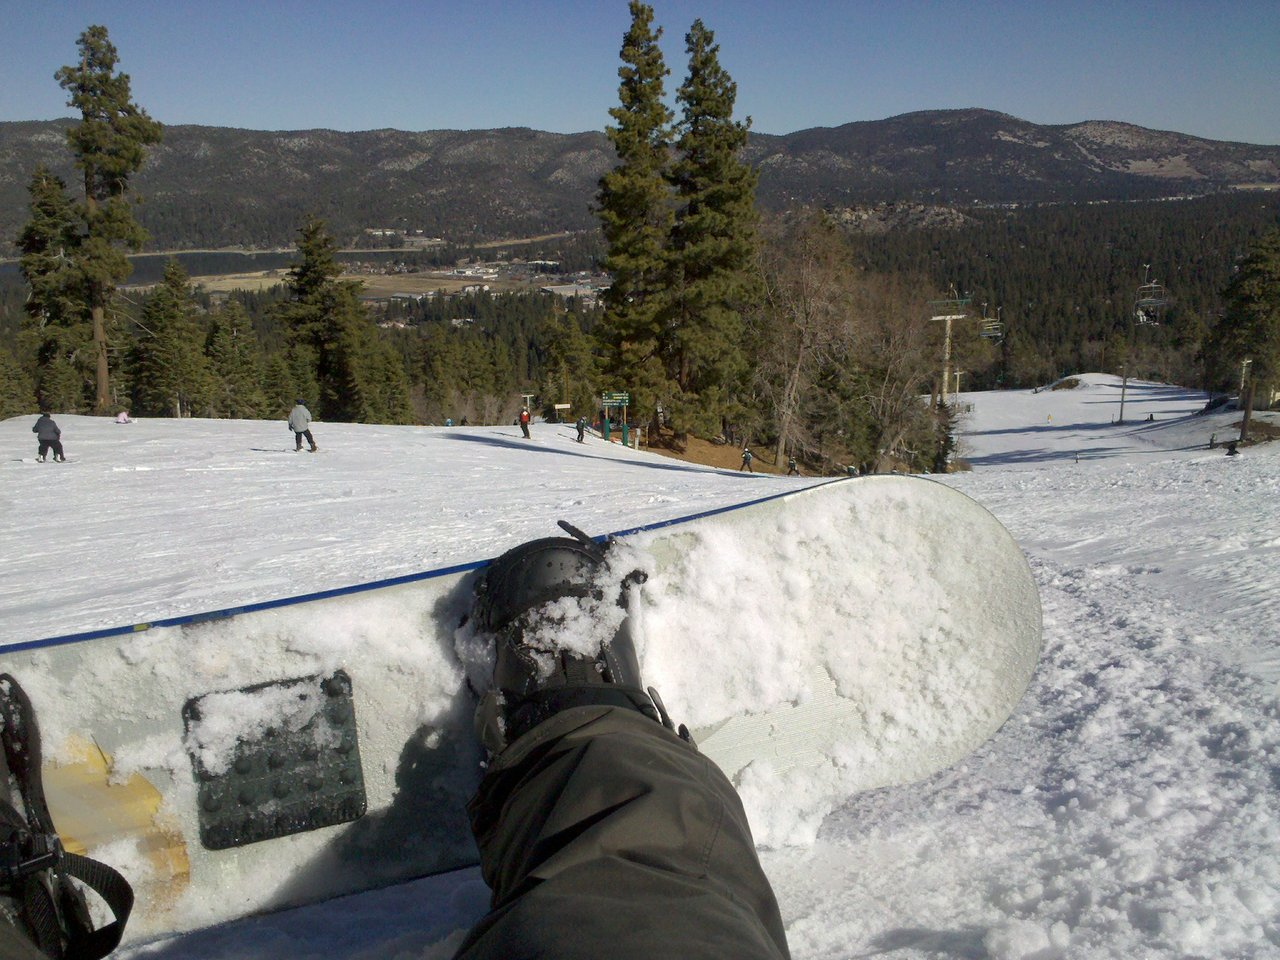 68 degrees. big bear. snowboarding jacketless.